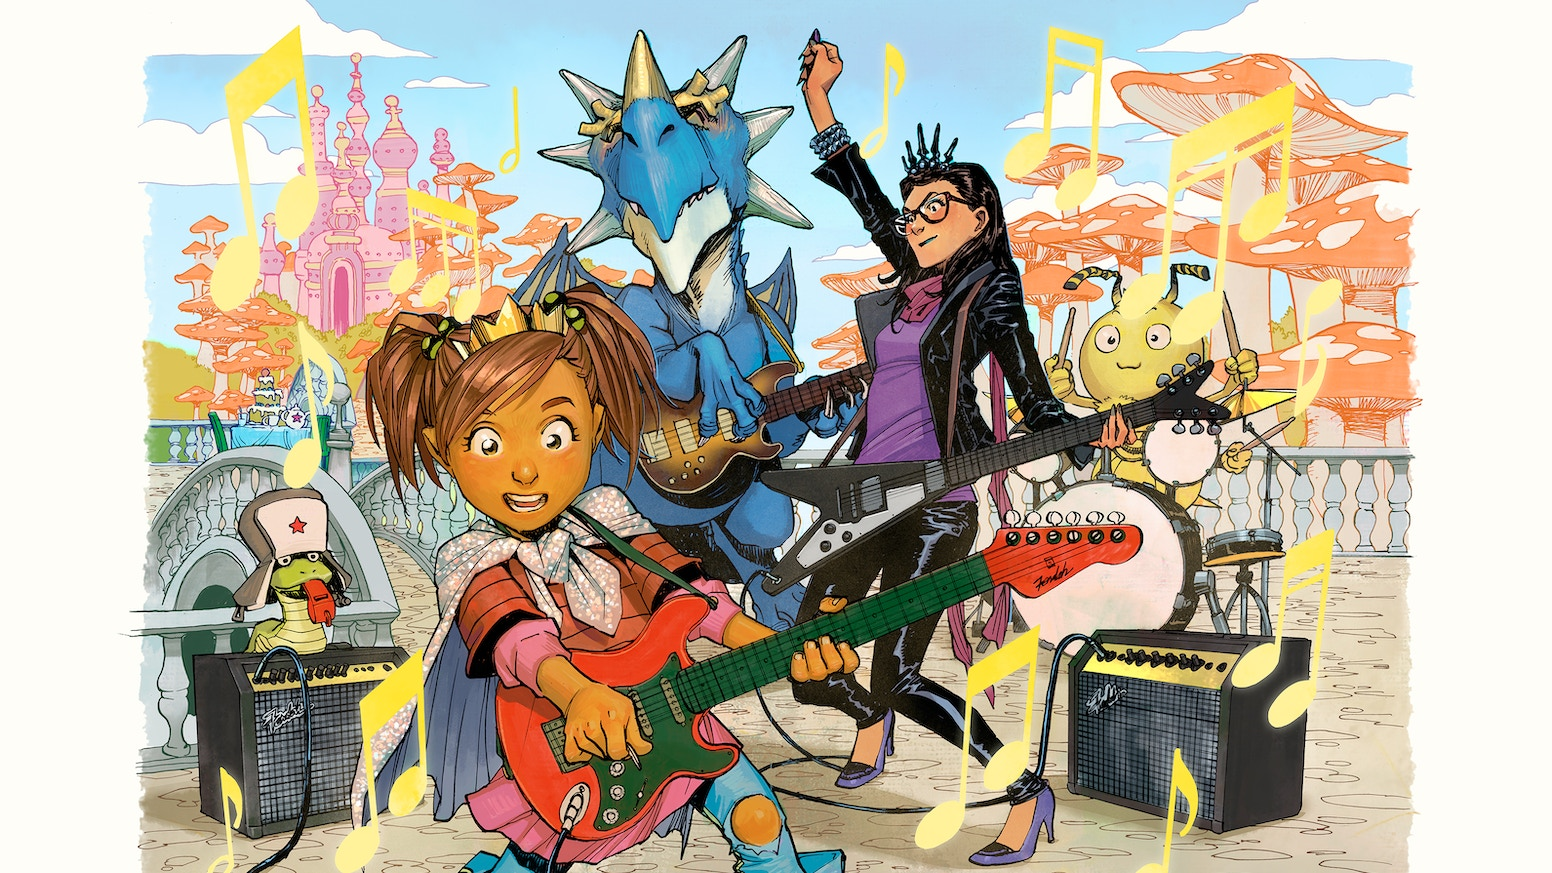 The sequel to the children's book THE PRINCESS WHO SAVED HERSELF, written by Greg Pak & Jonathan Coulton with art by Takeshi Miyazawa